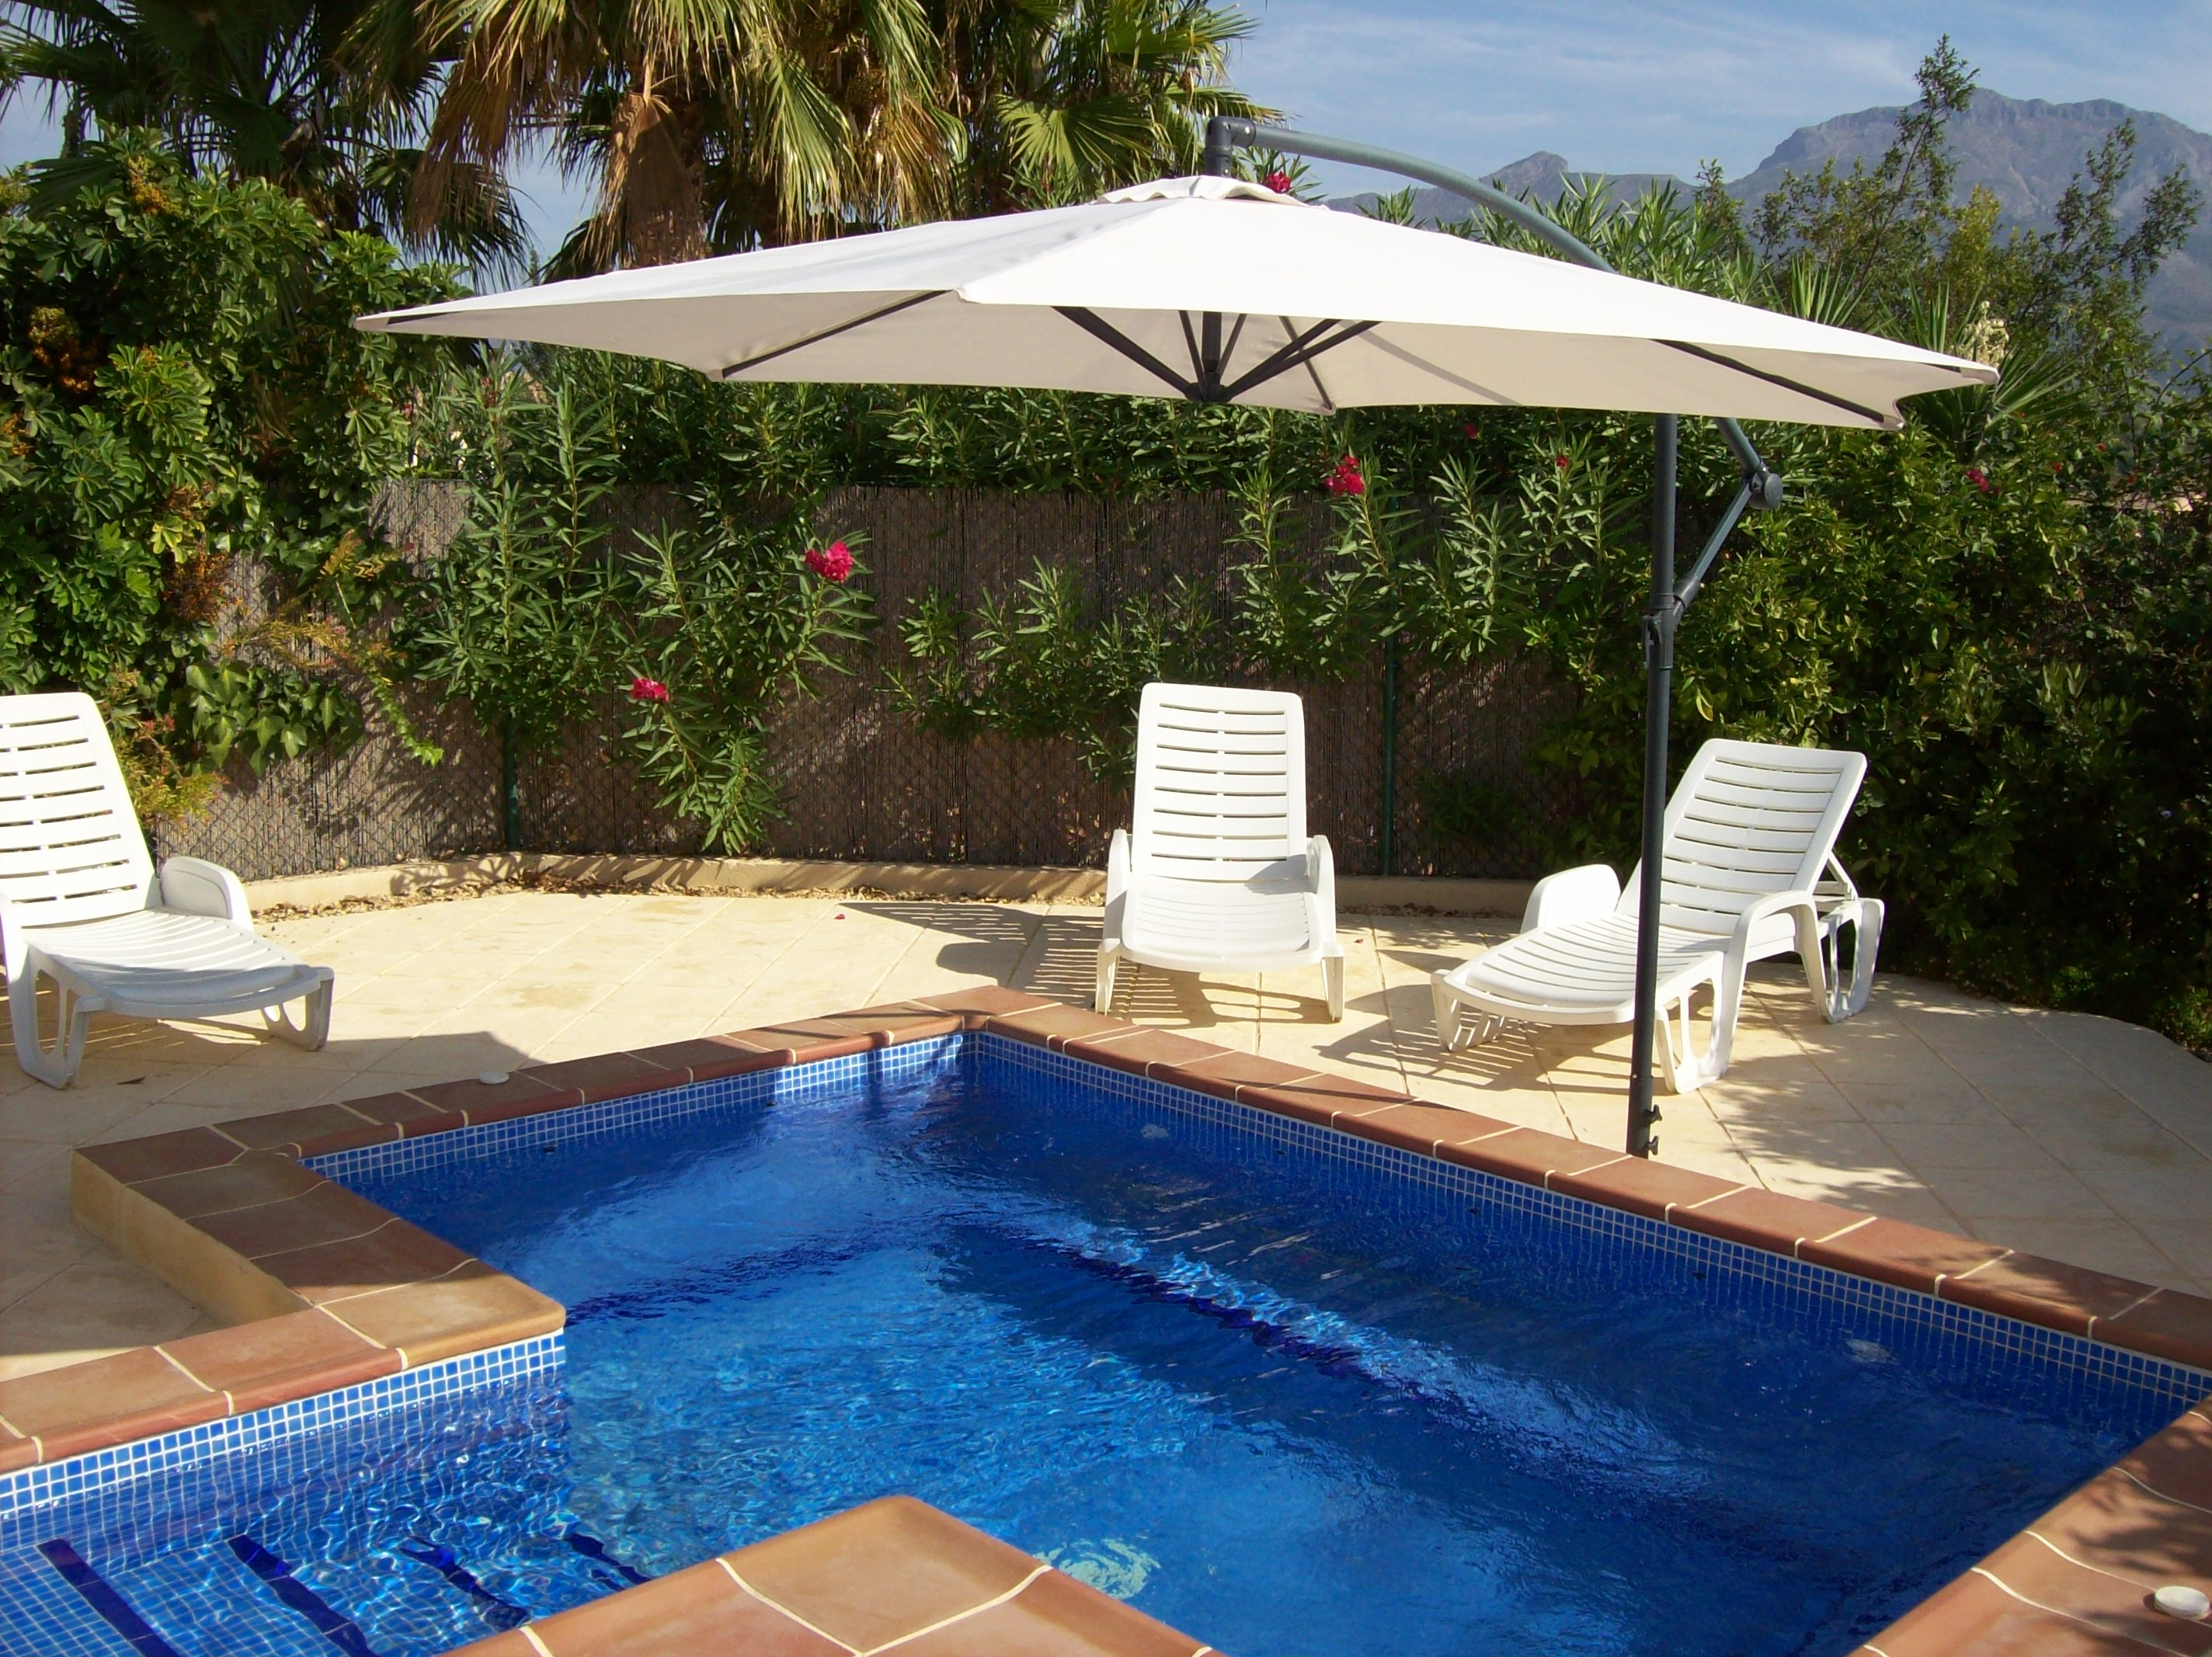 3 Bedroom Private Casa Jojo Villa with Excellent Mountain View - Altea Holiday Rentals